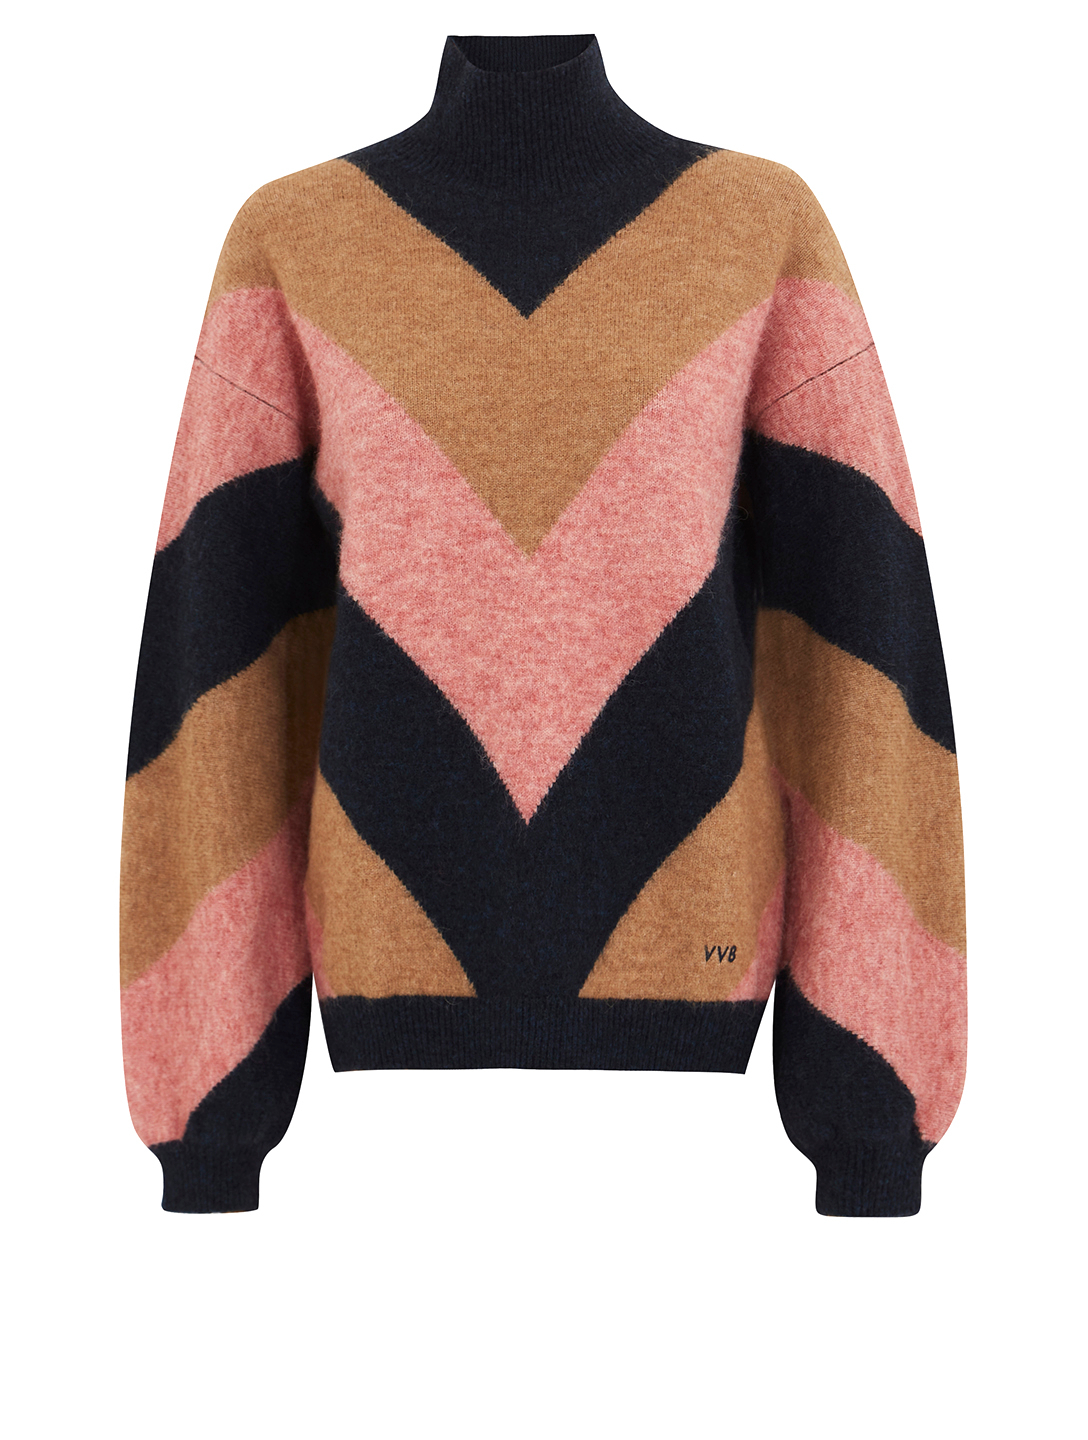 VICTORIA VICTORIA BECKHAM Alpaca and Wool Oversized Sweater Women's Multi